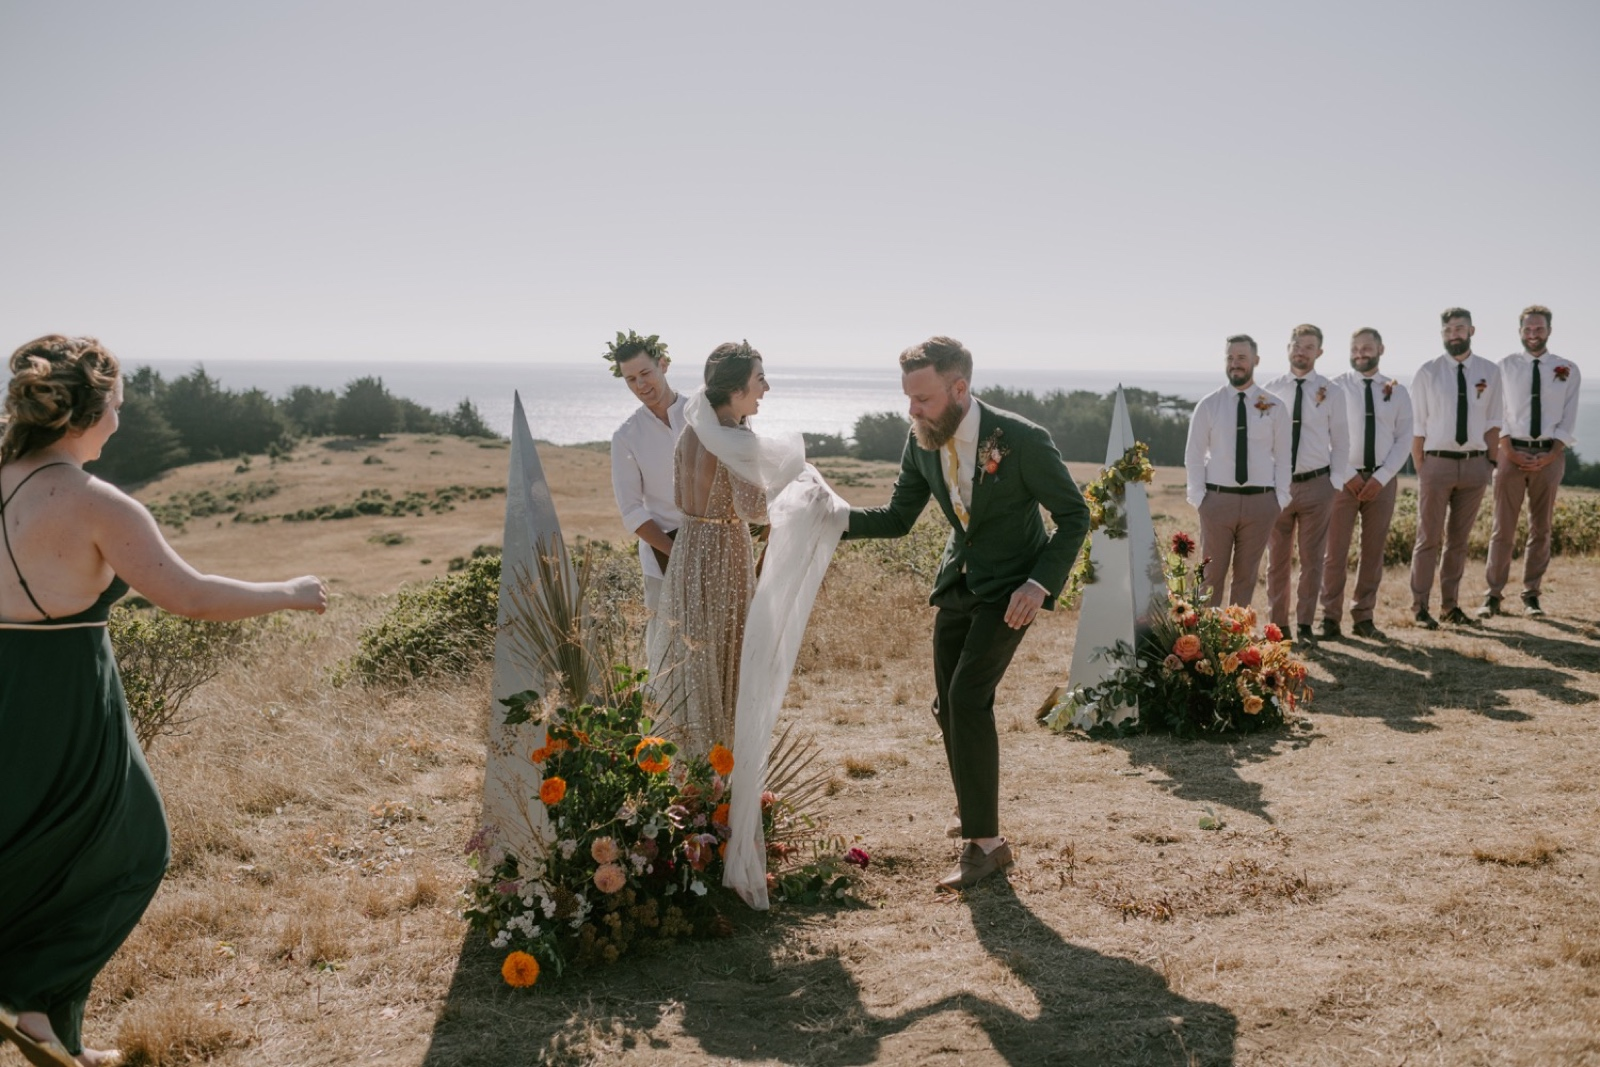 Mendocino_Wedding_Cuffeys_Cove079.JPG